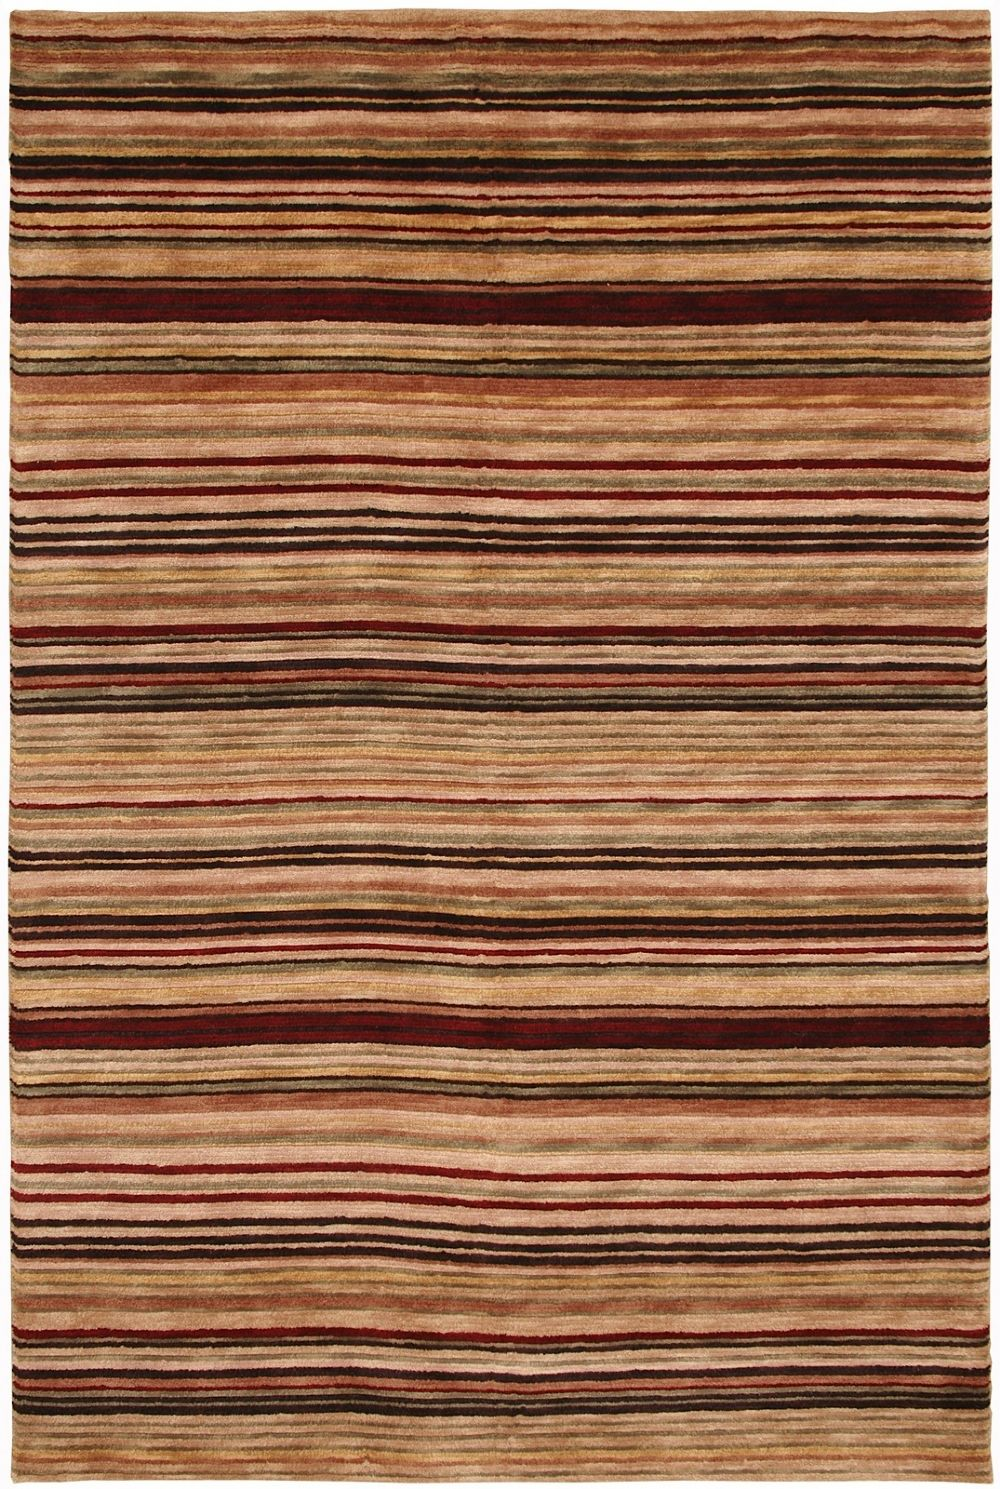 rizzy rugs tango solid/striped area rug collection